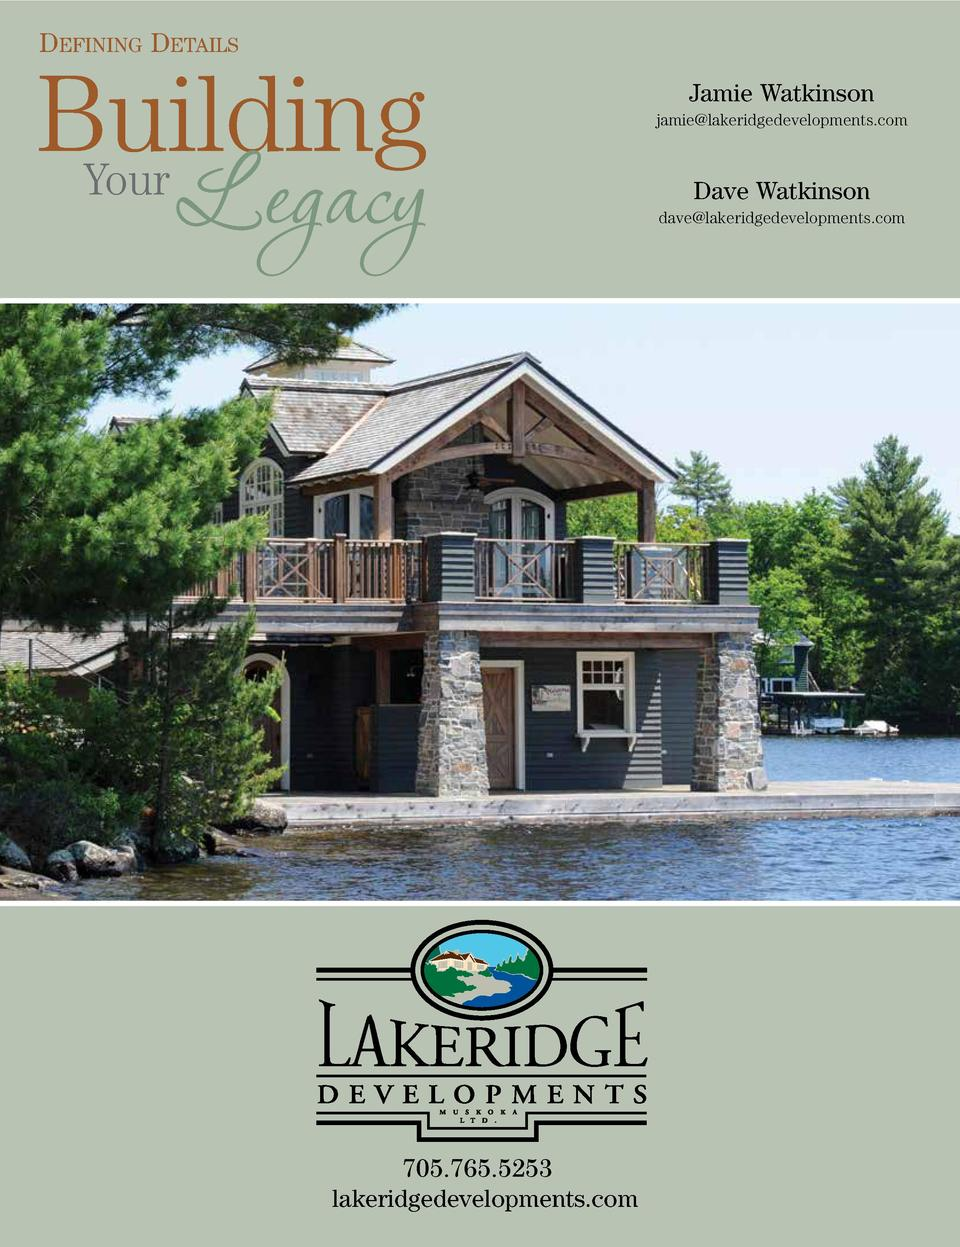 DEFINING DETAILS  Building Your  Legacy  4 UNIQUE MUSKOKA May 2018  705.765.5253 705.645.9095 lakeridgedevelopments.com  J...